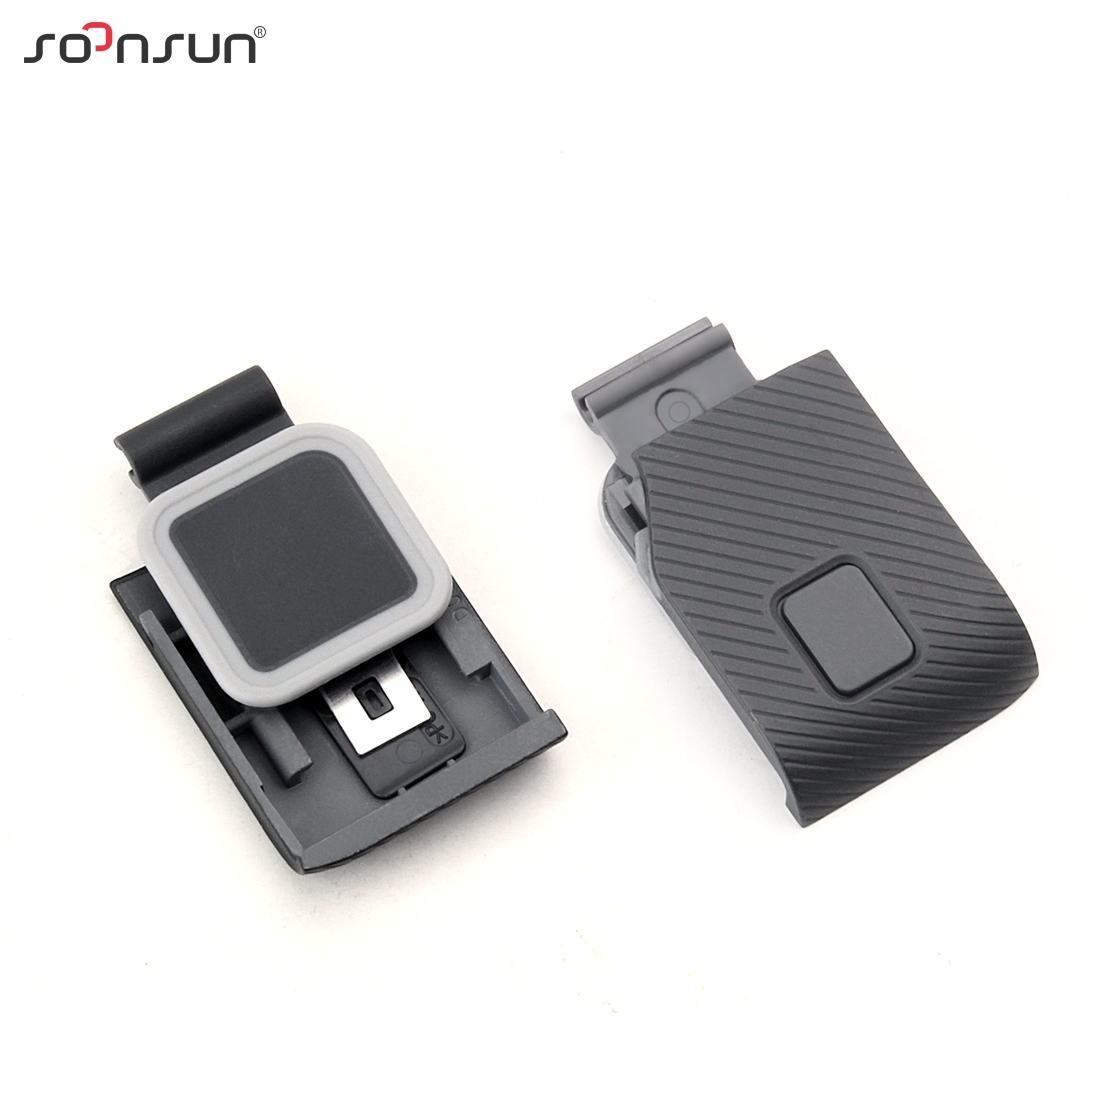 Image 4 - SOONSUN Protective Lens Replacement Side Door Repair Parts USB C Mini HDMI Port Side Cover for GoPro HERO 7 6 5 Black CameraSports Camcorder Cases   -